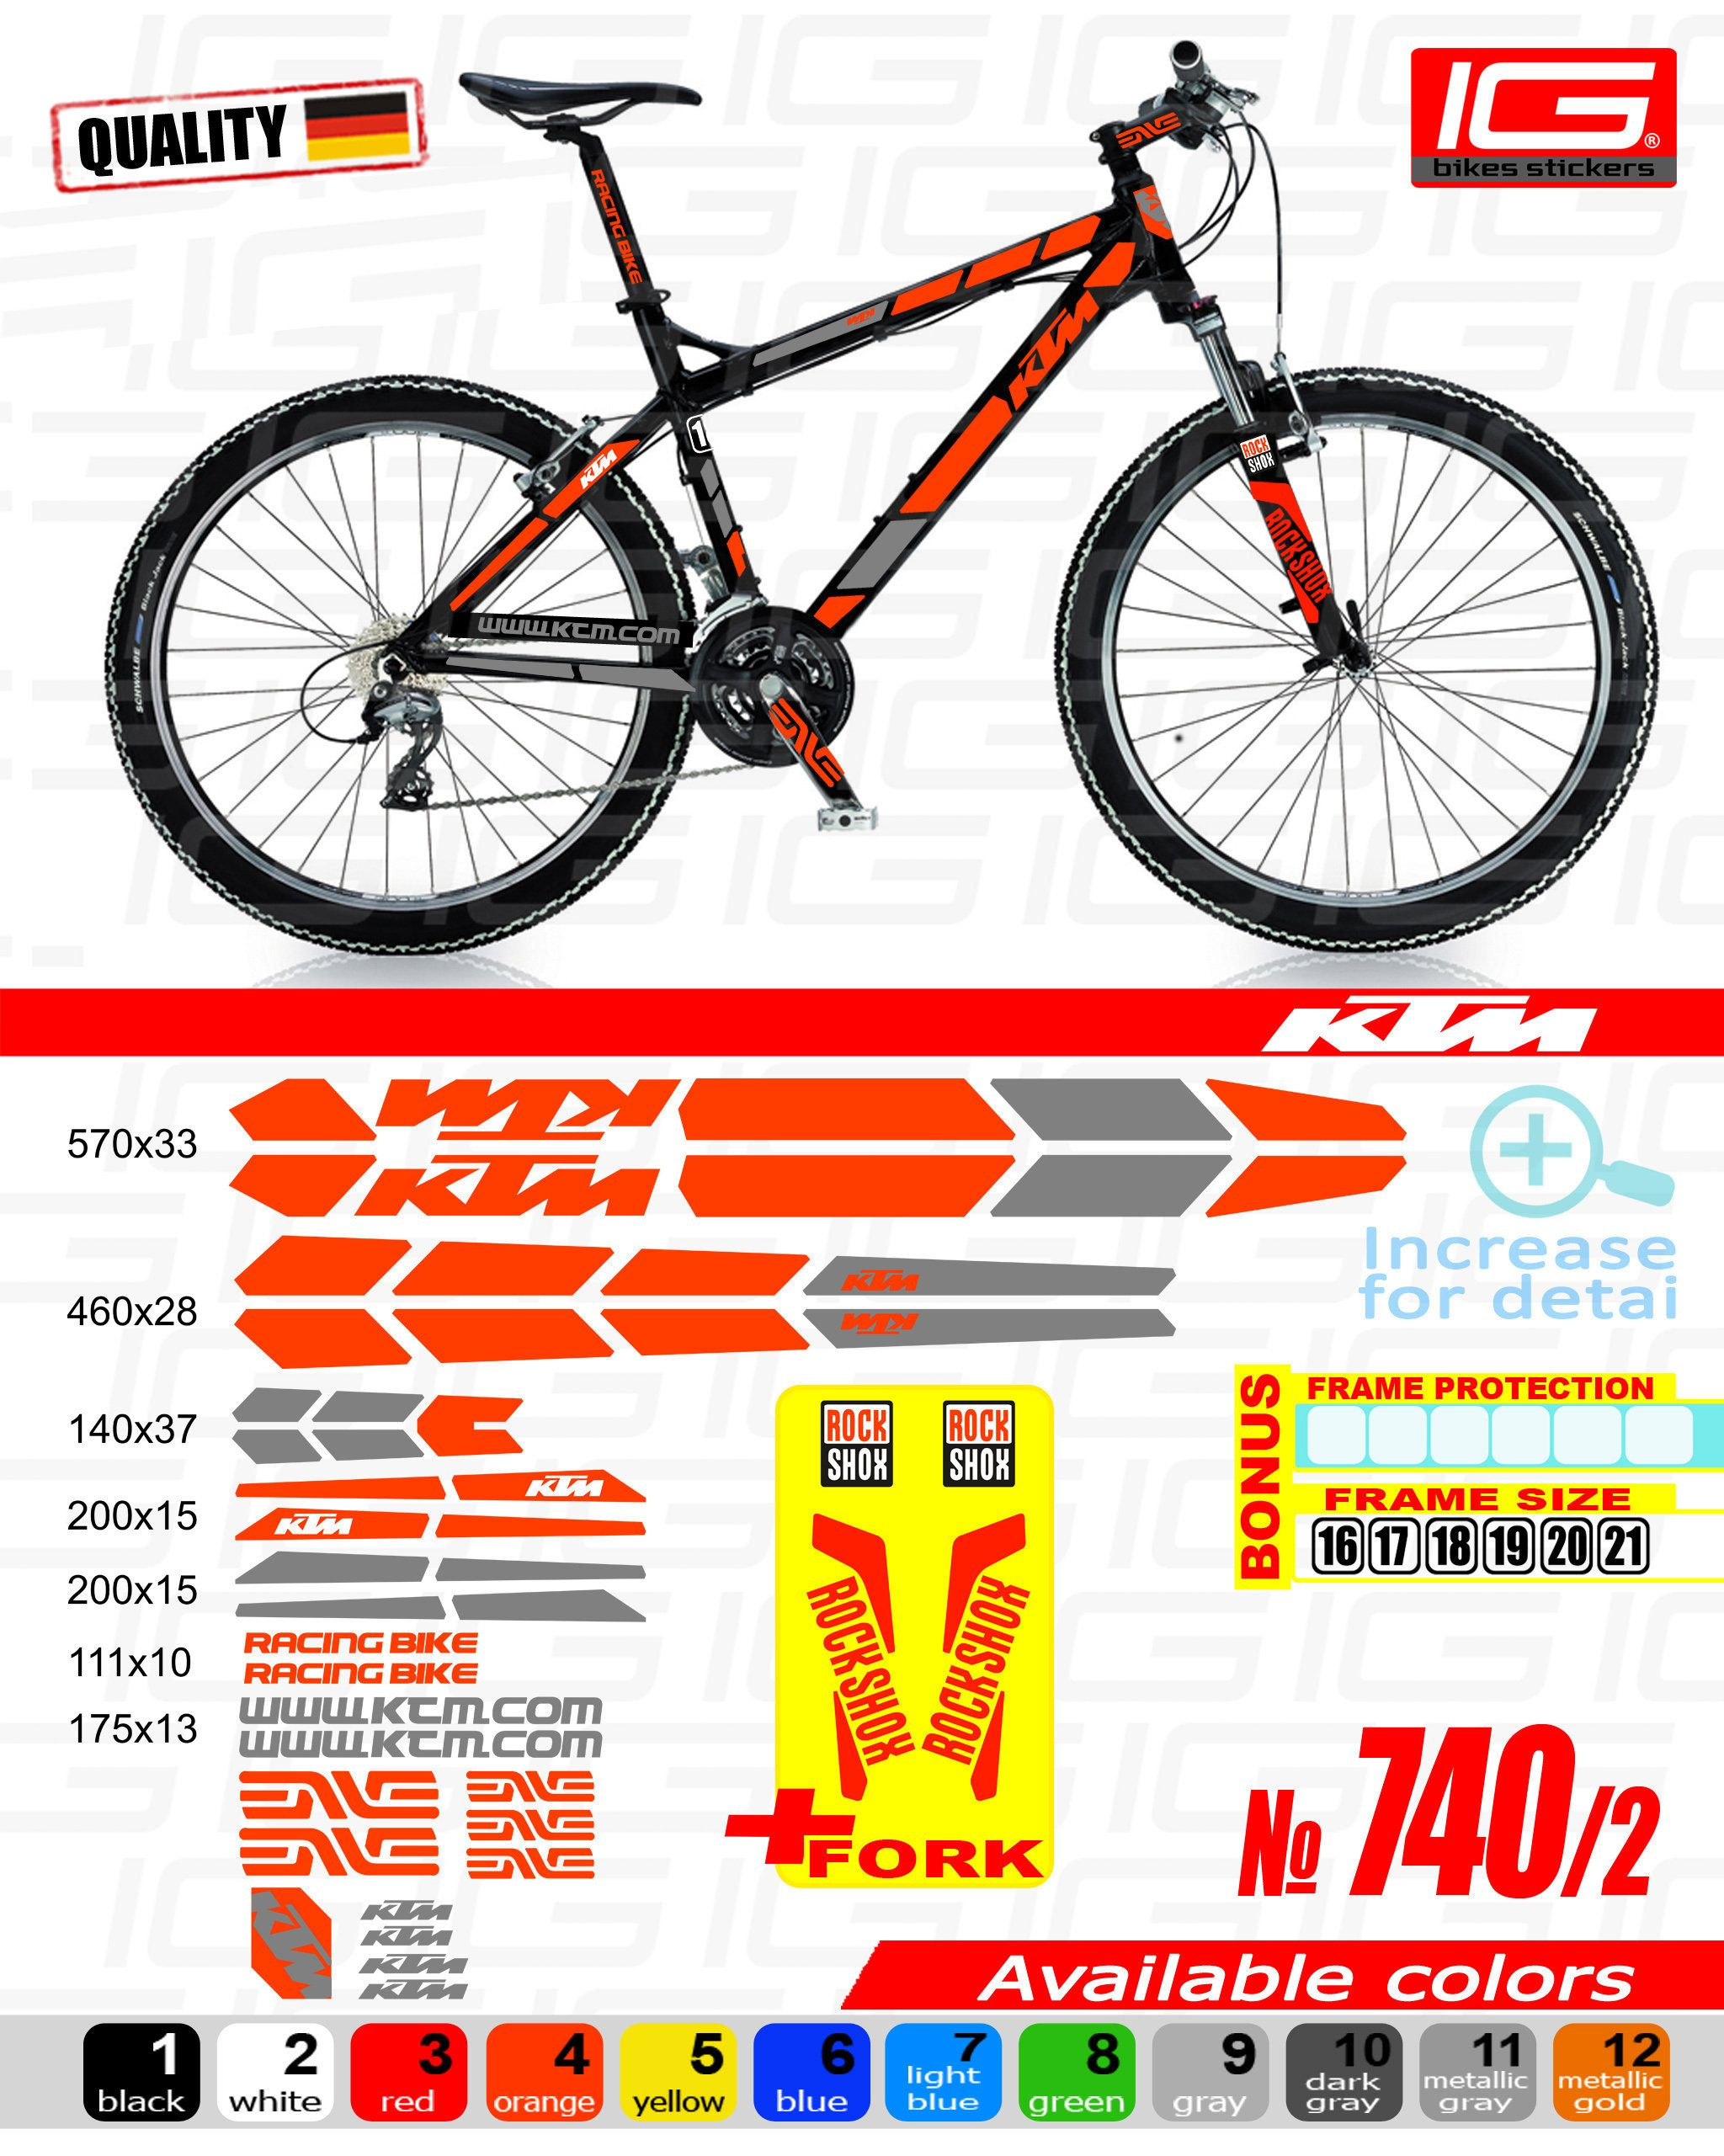 Pin By Igor On Bike Frame Stickers Bicycle Stickers Stickers On The Frame And Fork Bicycle Mountain Restoration Bike Stickers Bike Frame Ktm [ 2561 x 2048 Pixel ]